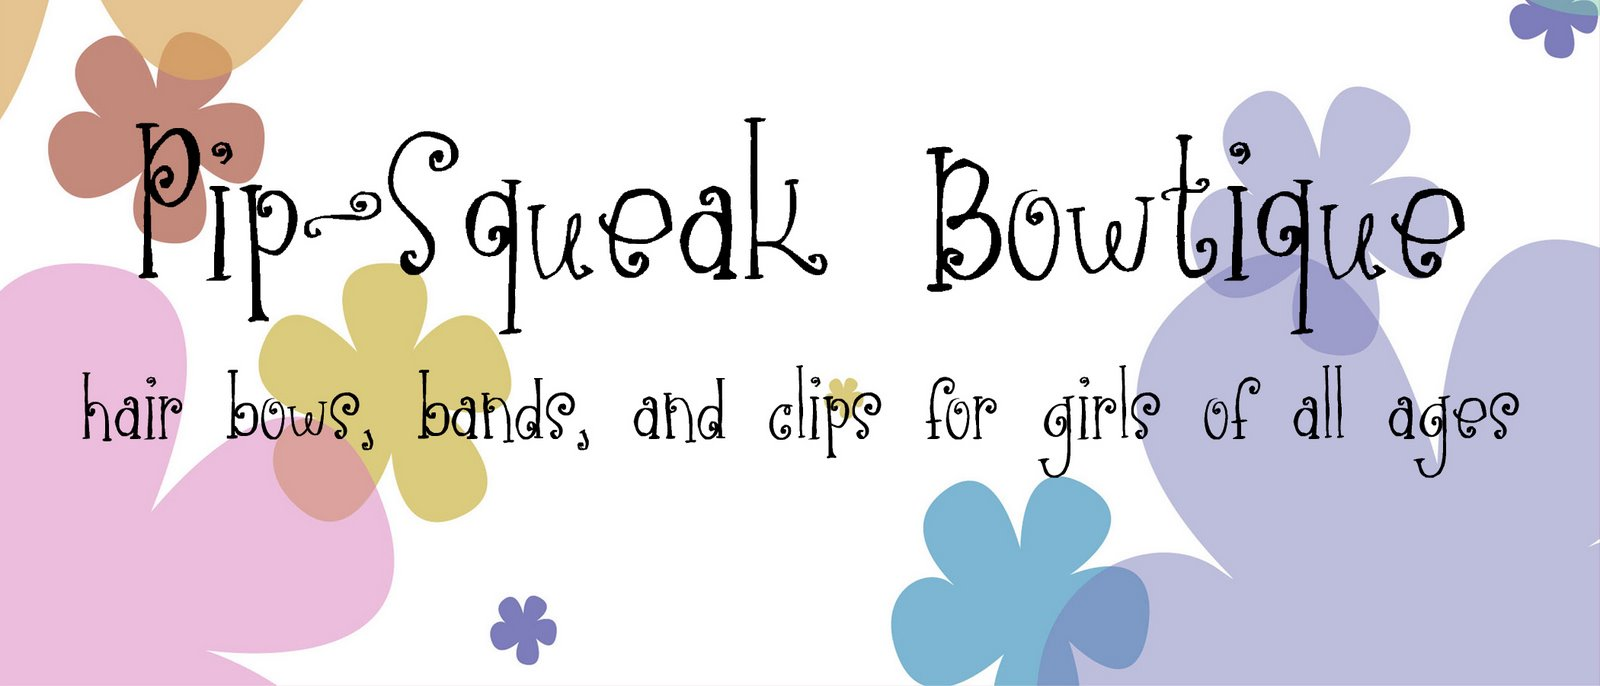 Pip-Squeak Bowtique Hats